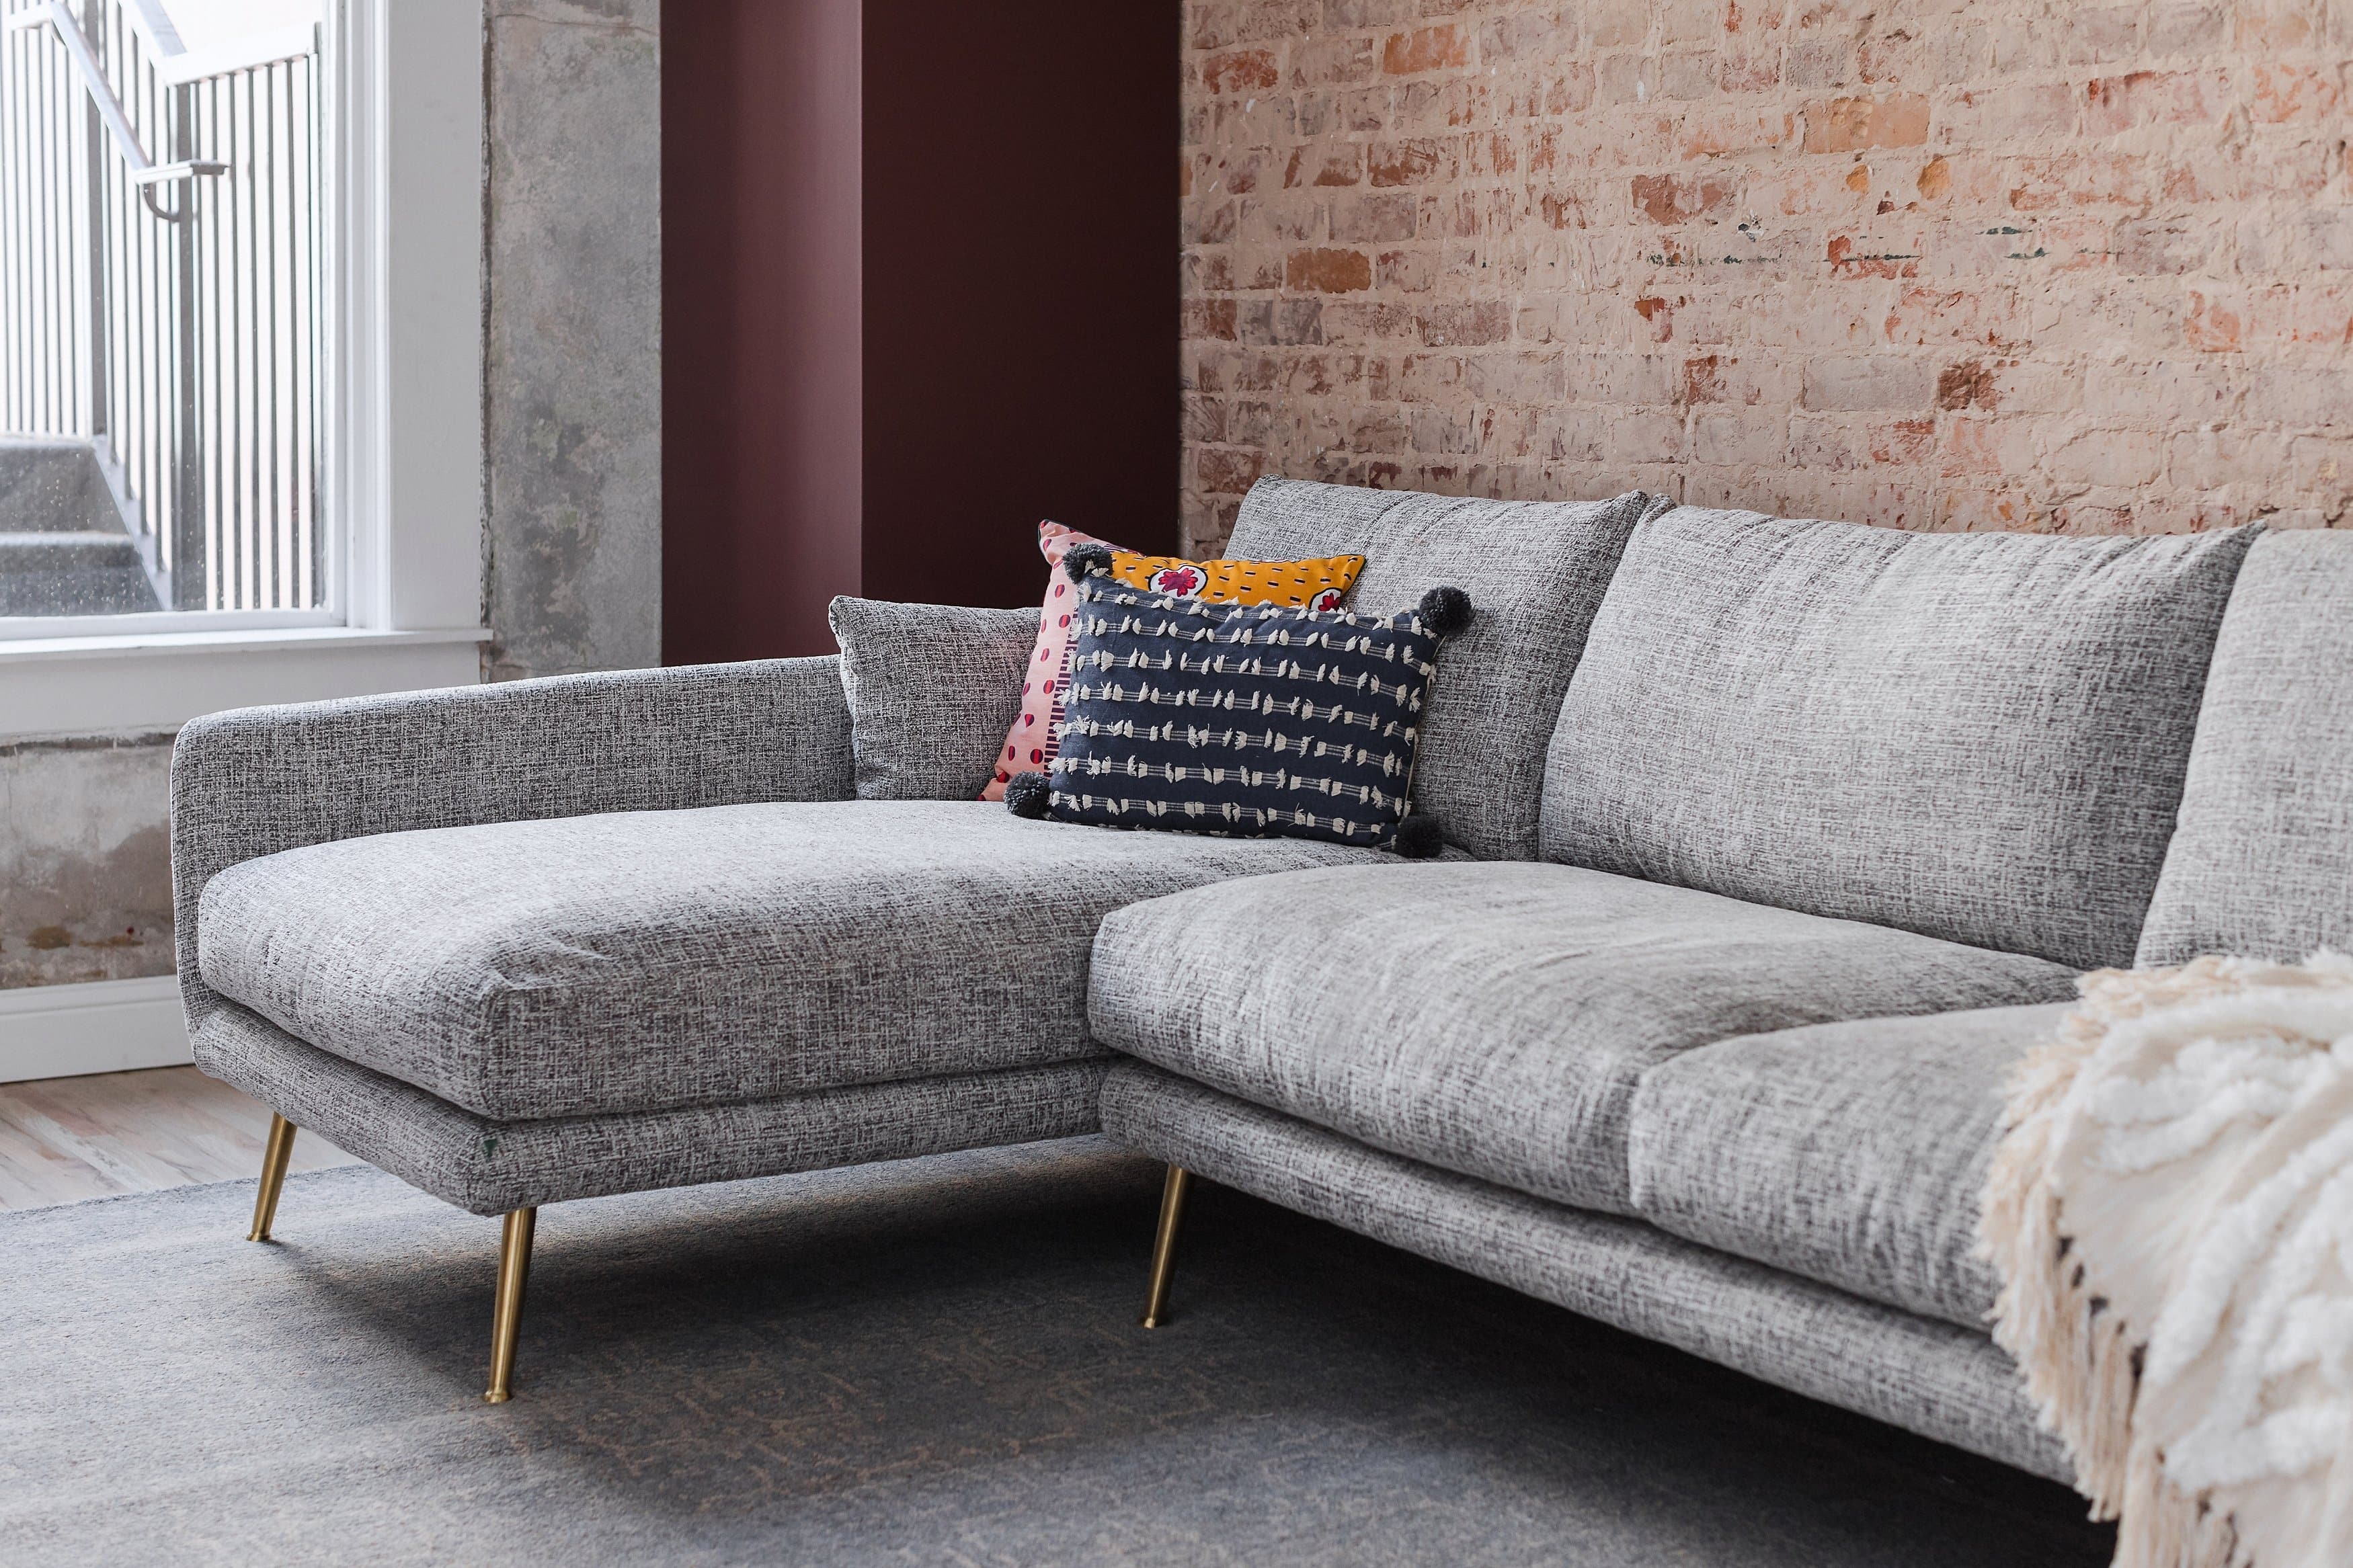 Harlow Mid Century Modern Sectional Sofa Down Feathers Gold Legs Edloe Finch Furniture Co